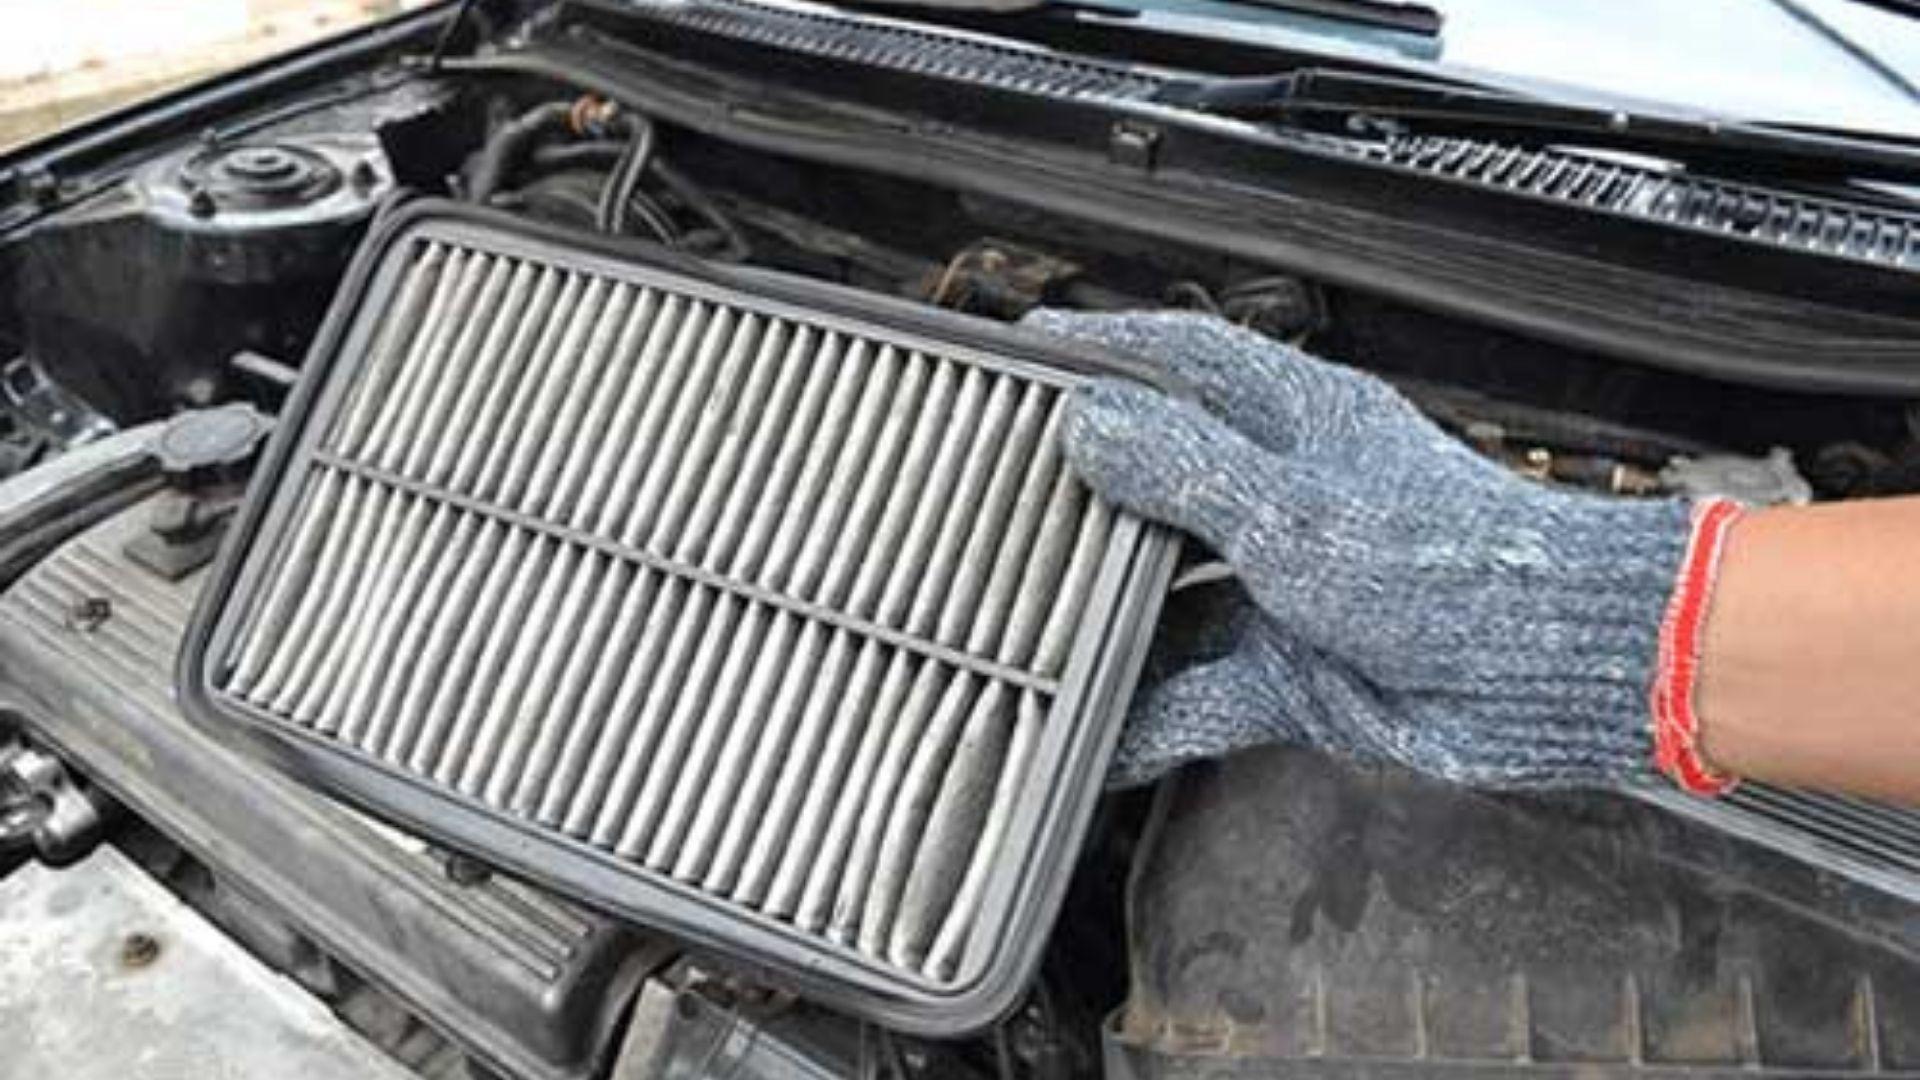 BENEFITS OF REPLACING AIR FILTERS​